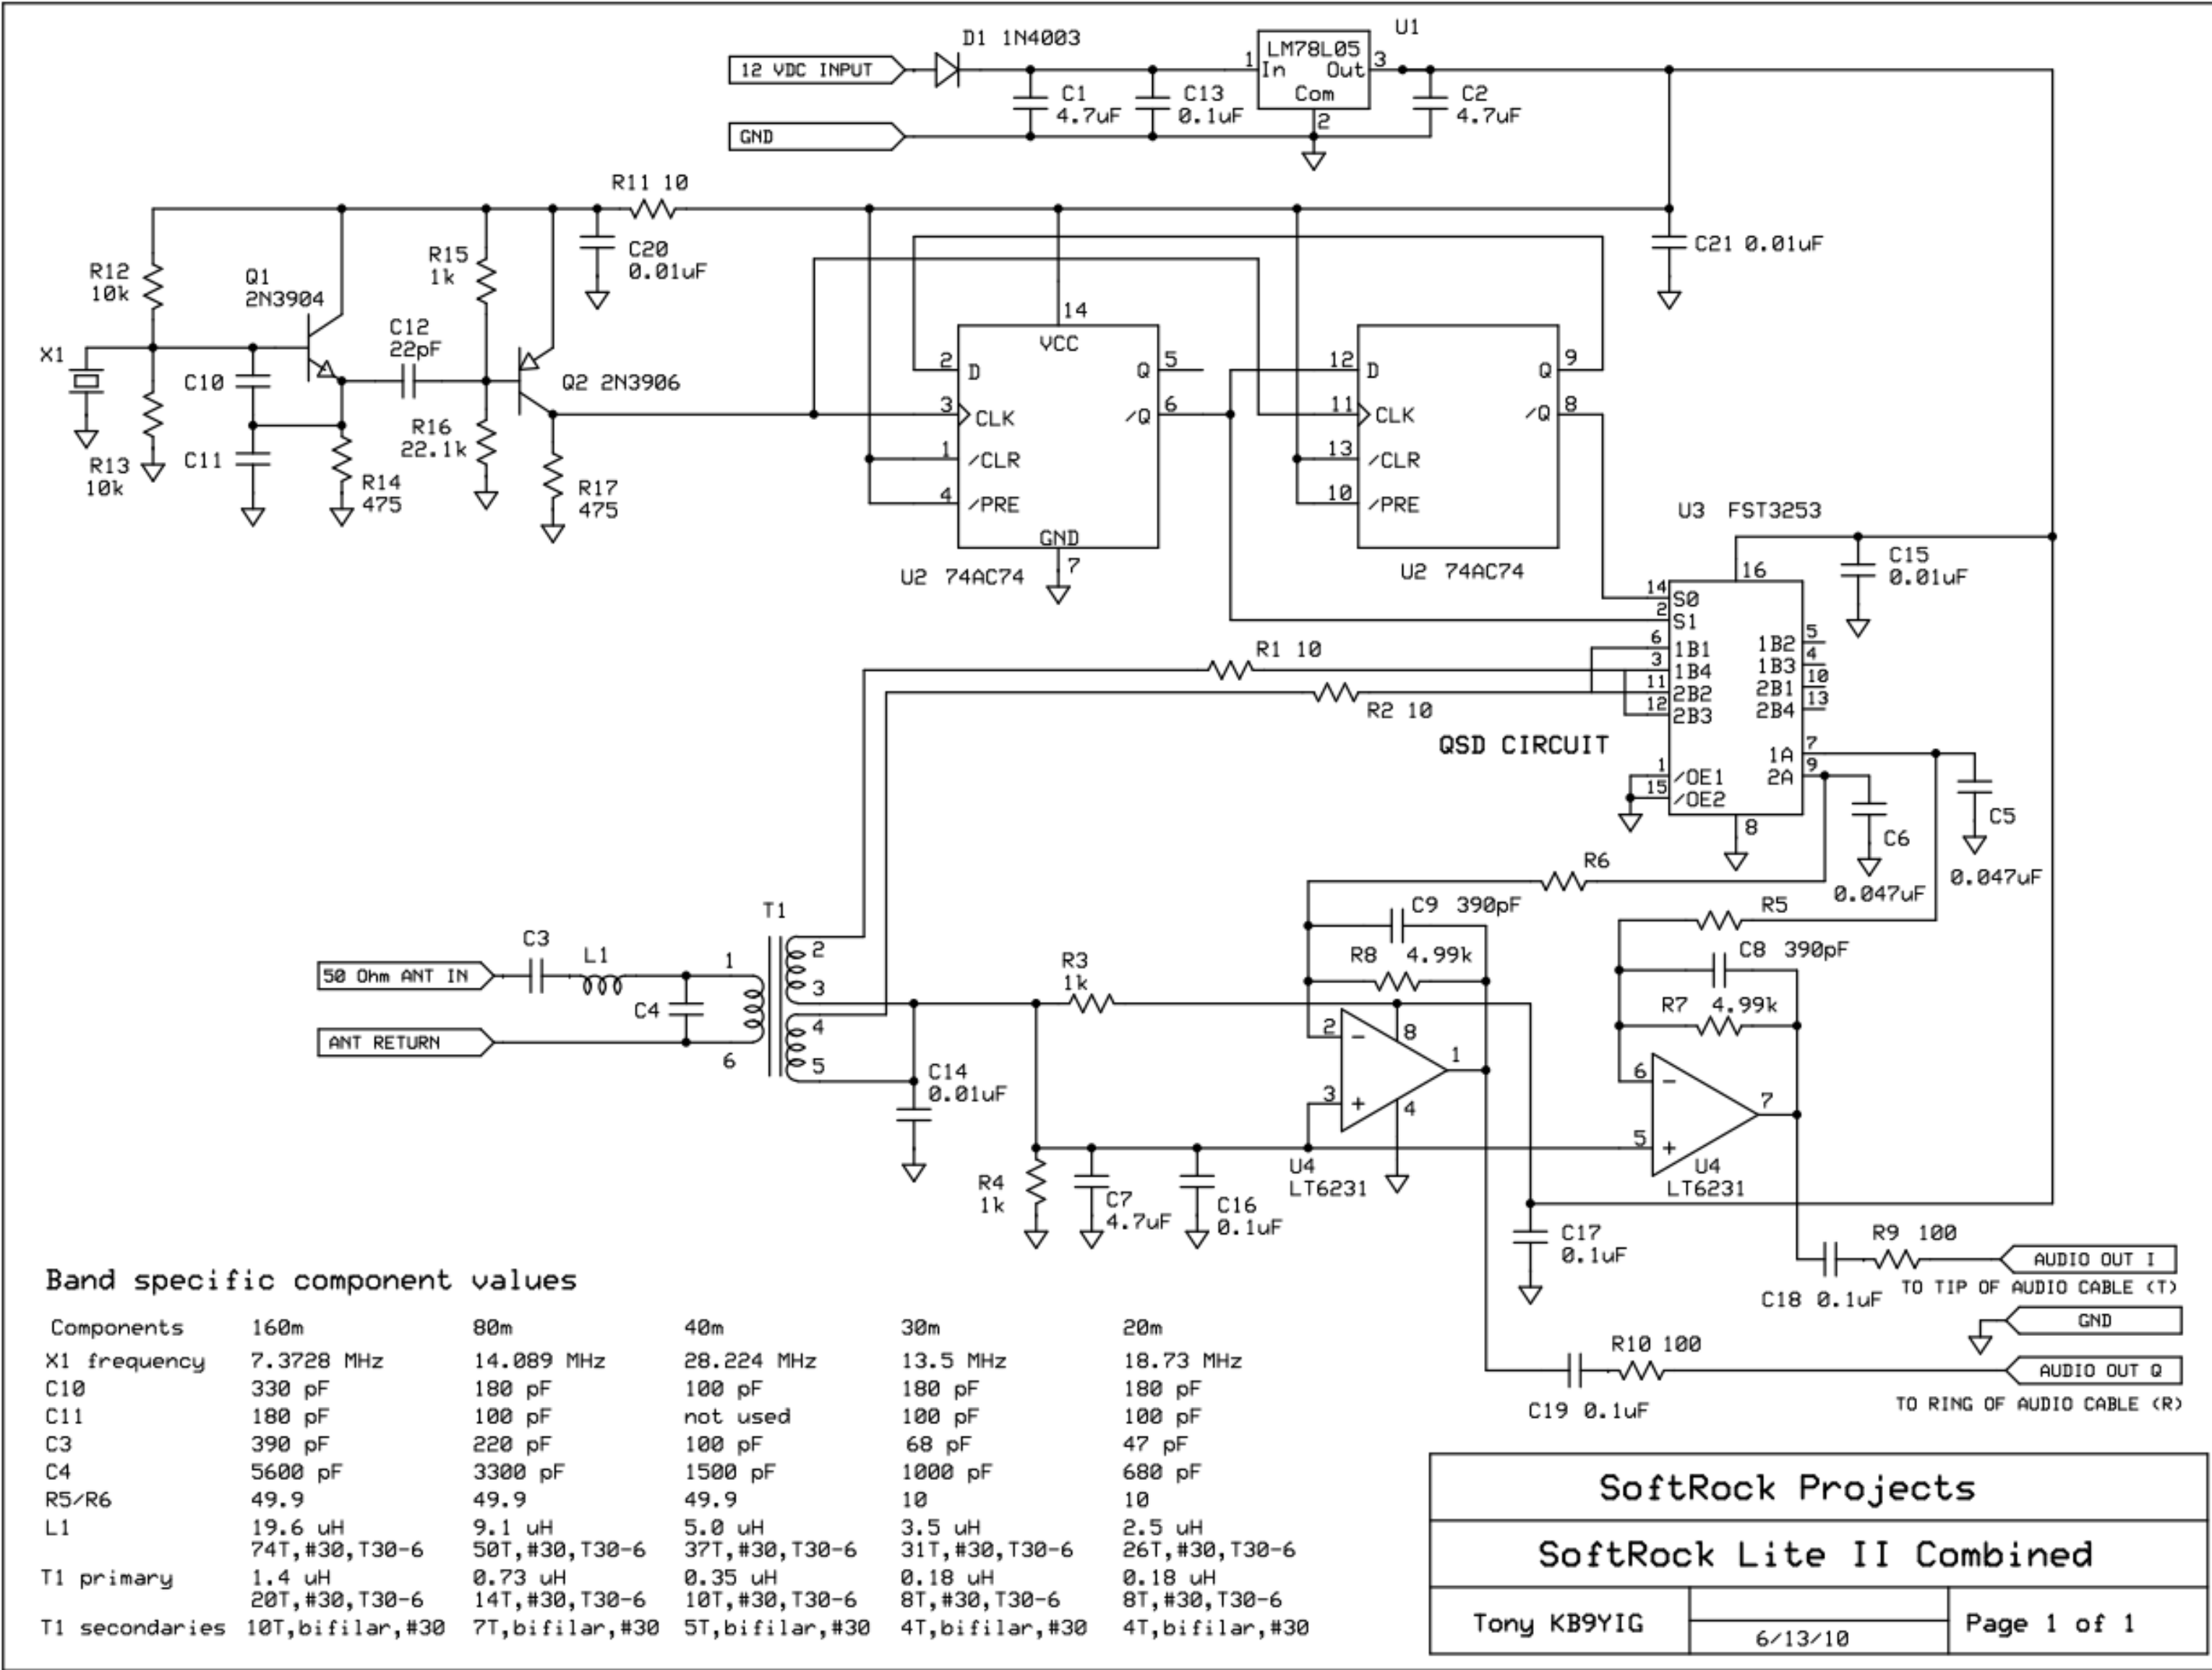 Wiring Diagram 1254 Page 4 And Schematics Kenwood Dnx6140 Schematic For Ten Tec Model Diy Diagrams U2022 Rh Newsmoke Co